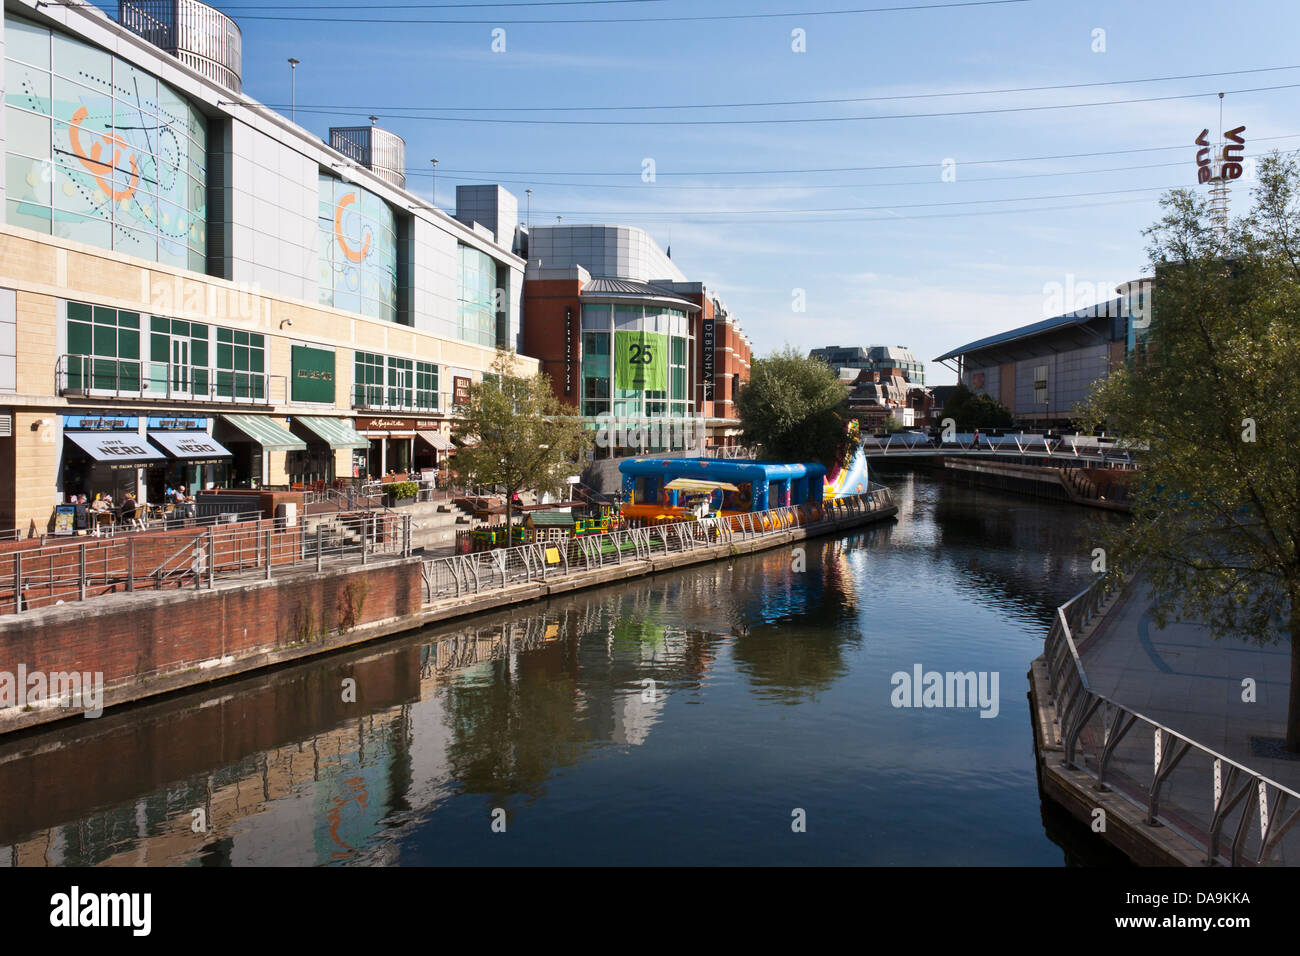 The Oracle shopping centre in the town of Reading, Berkshire, England, GB, UK. - Stock Image